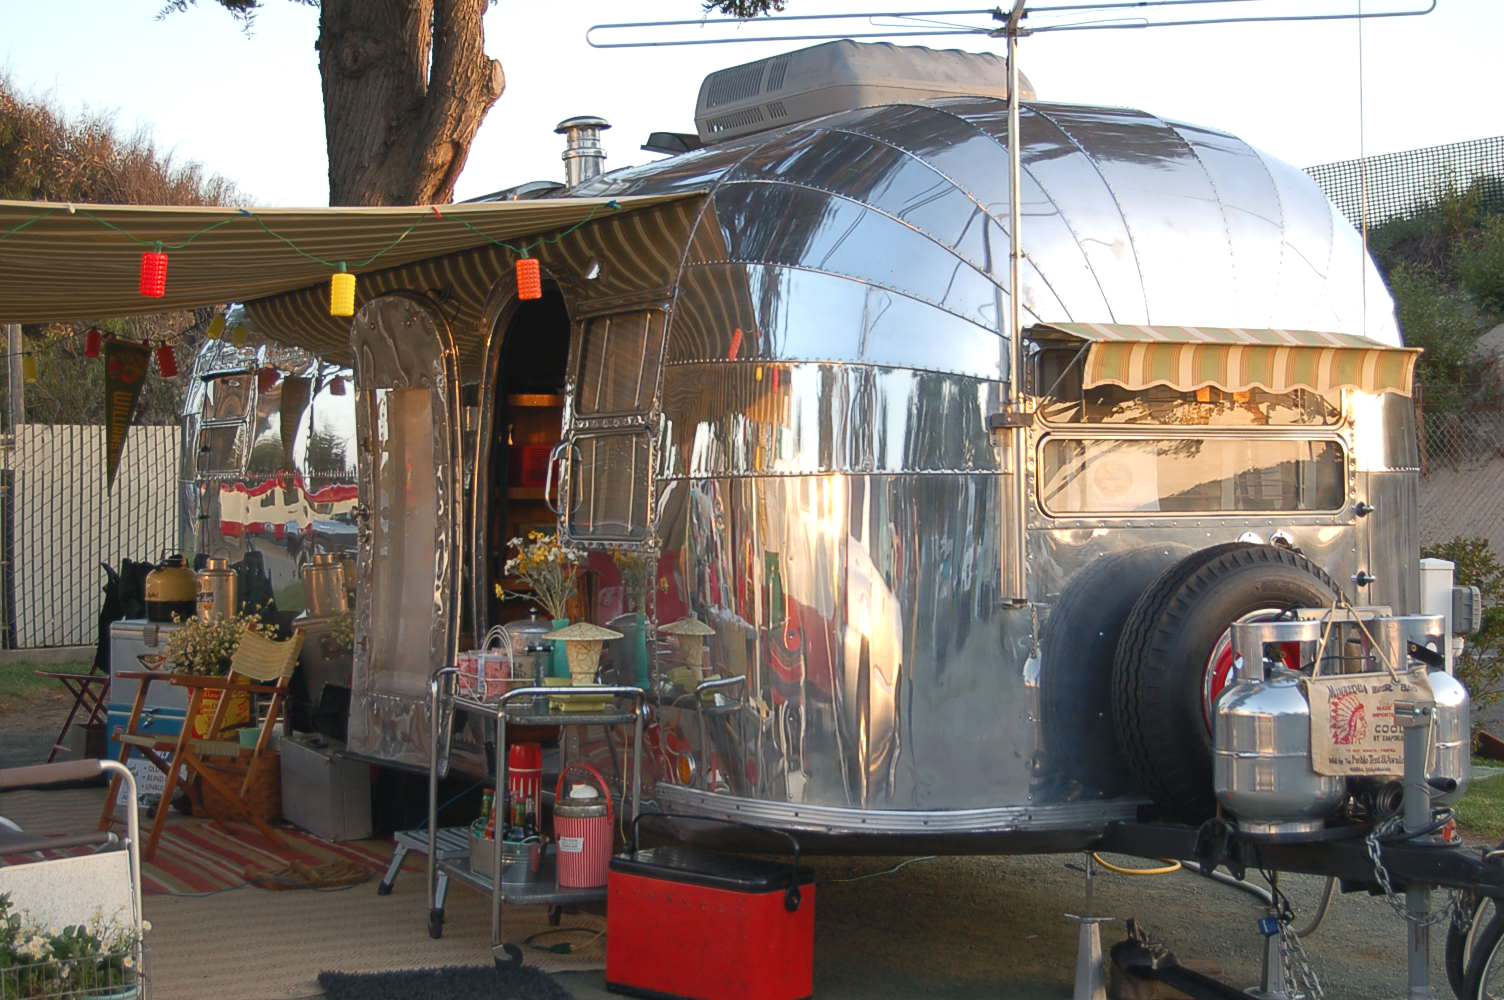 Vintage 1952 Airstream Cruiser Trailer With Awning Lantern Lights